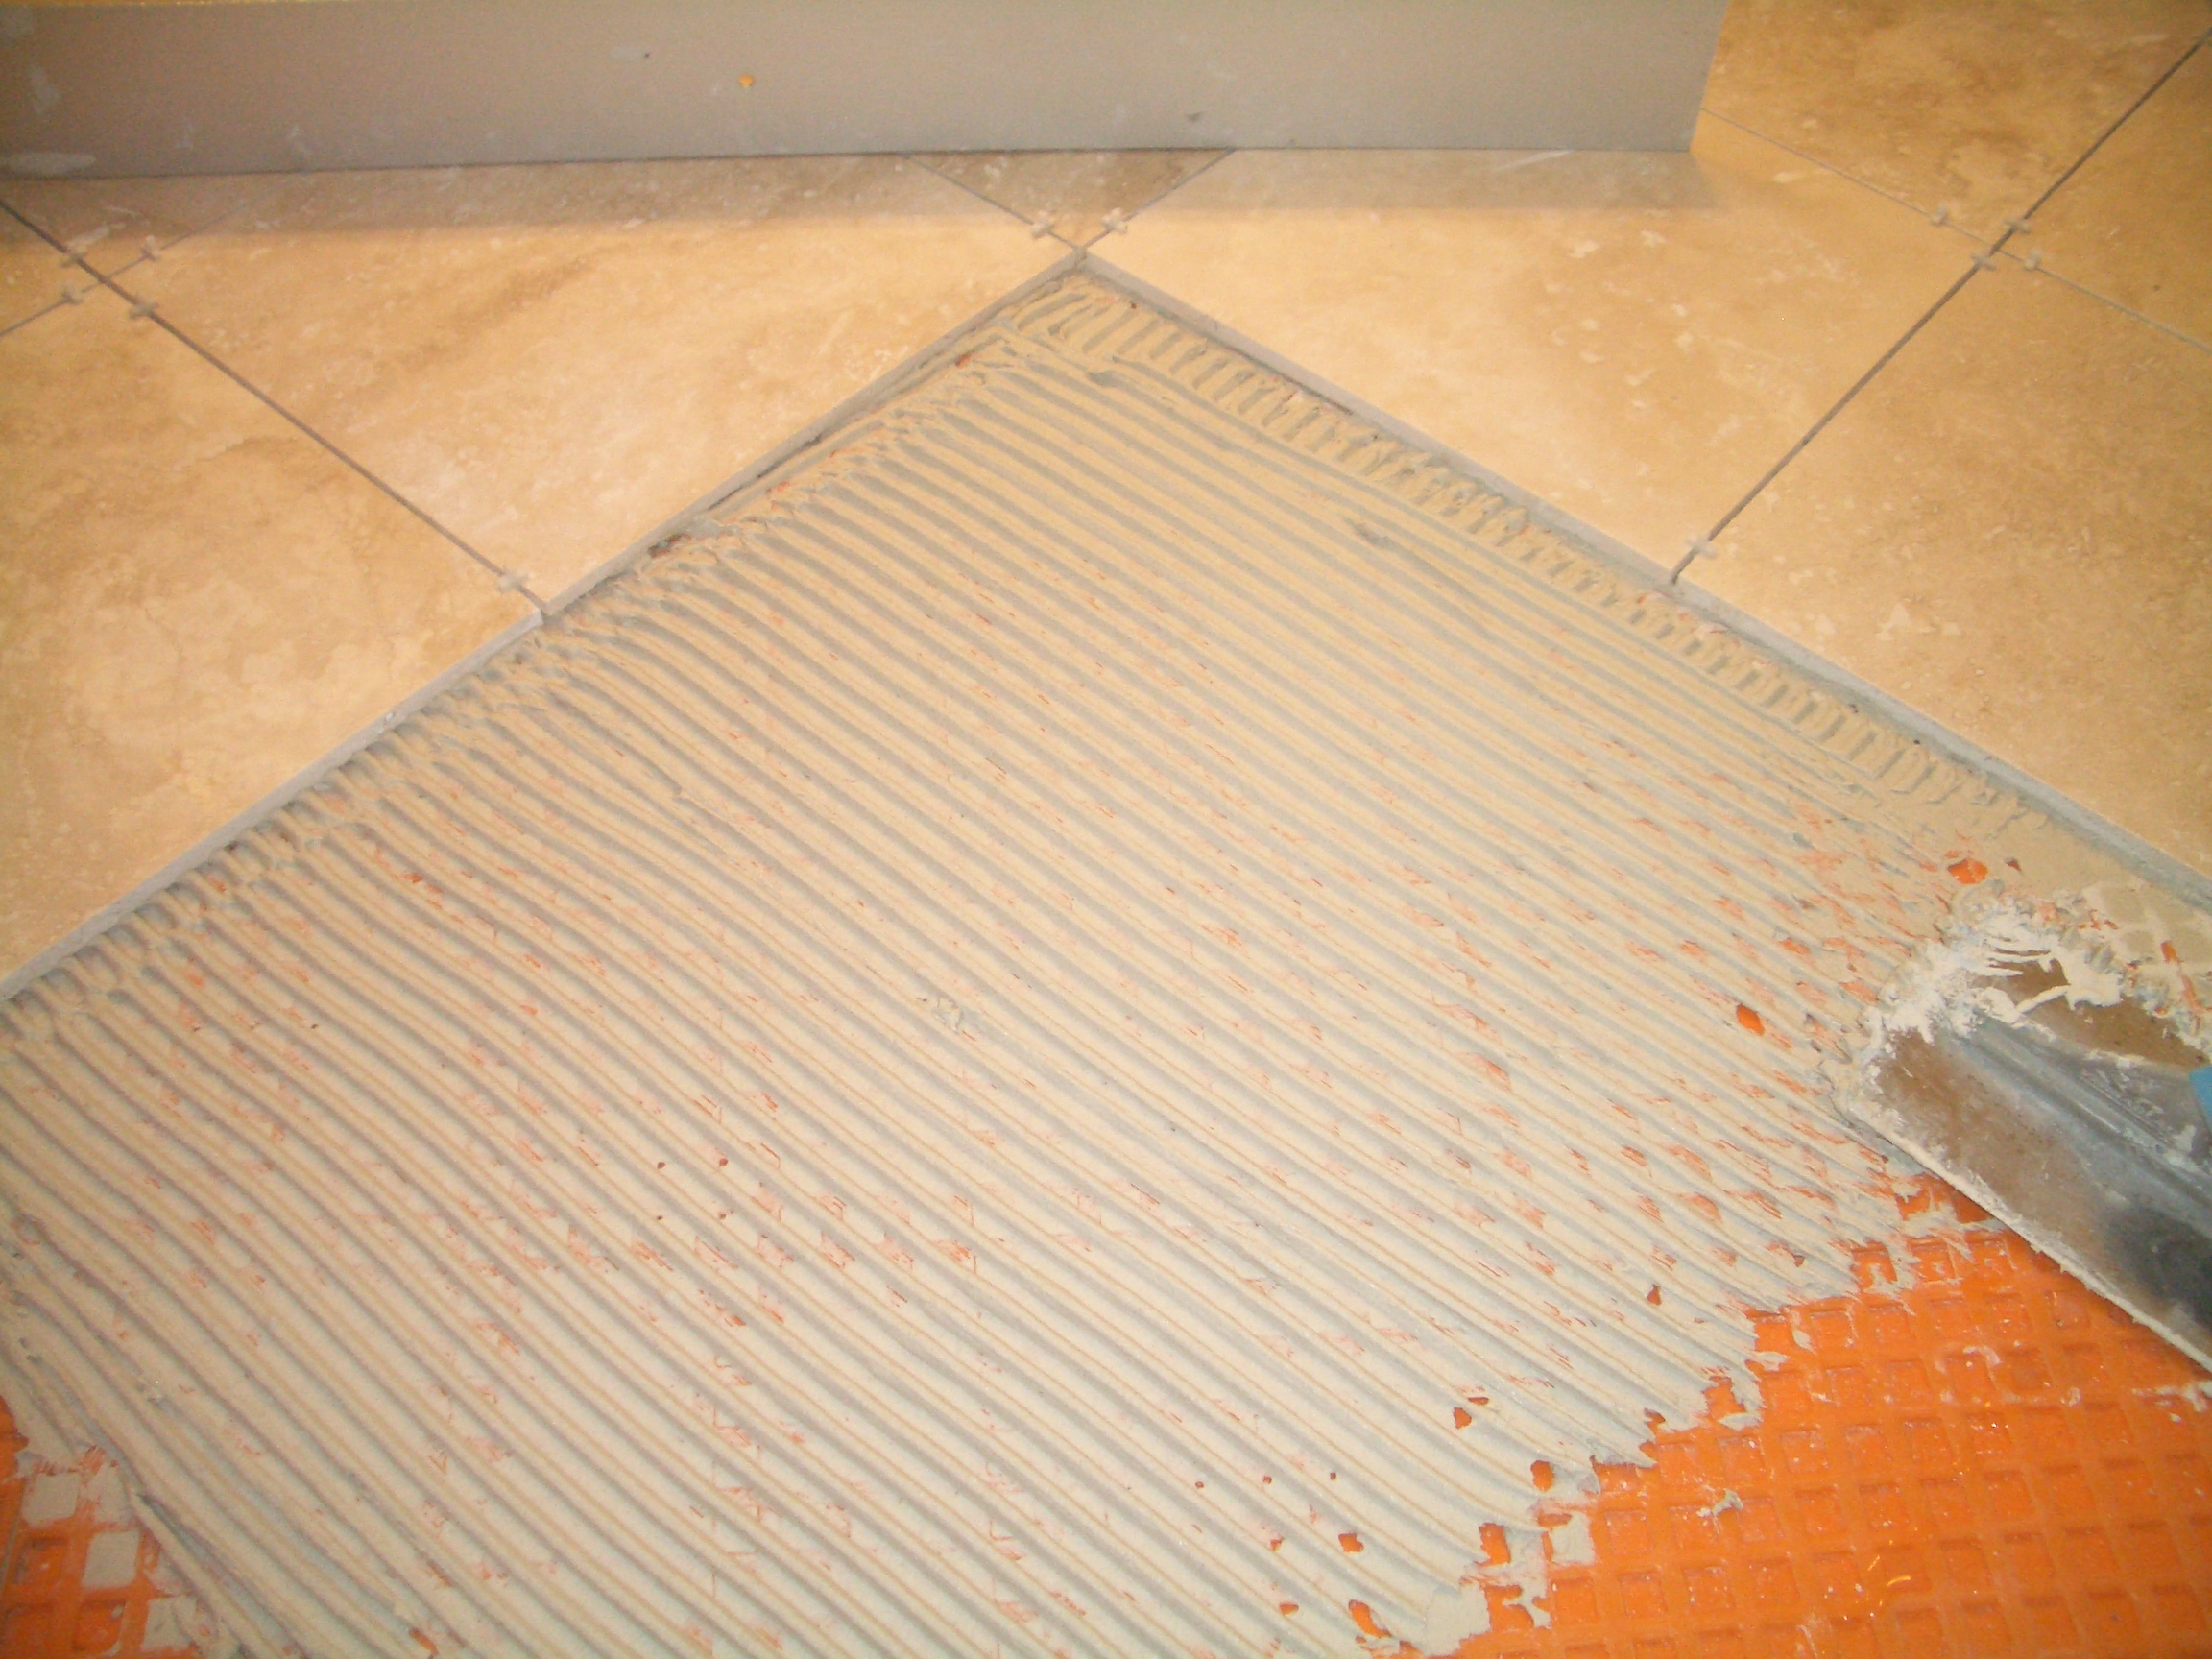 How to install absolutely flat floor tile thinset lines all combed consistently dailygadgetfo Images